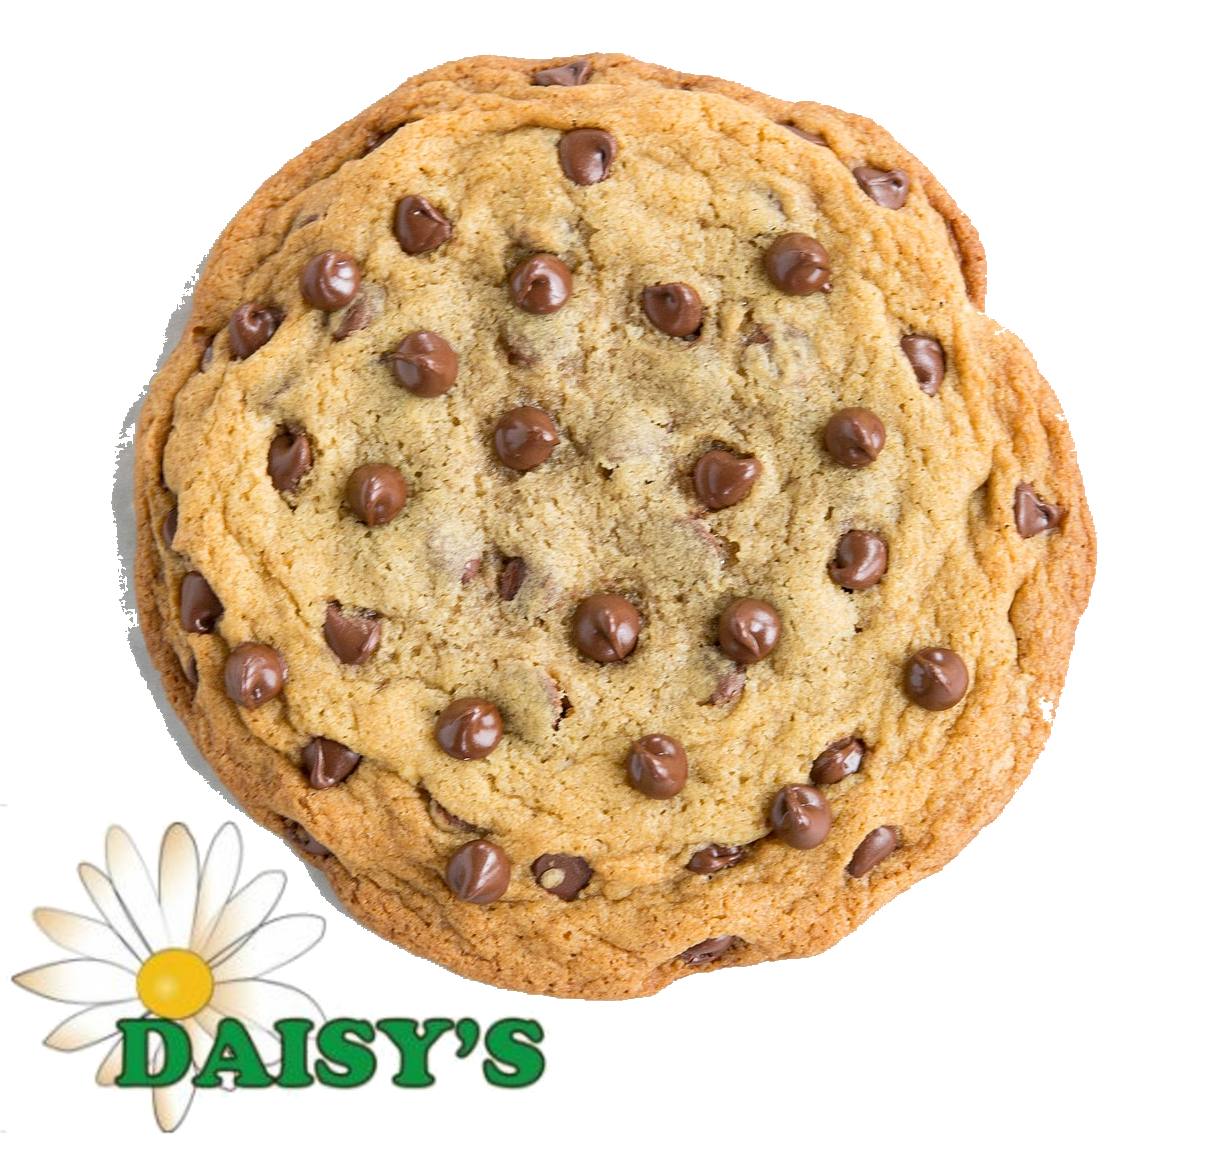 * Daisy's Bakery Chocolate Chip Cookie 12 Count